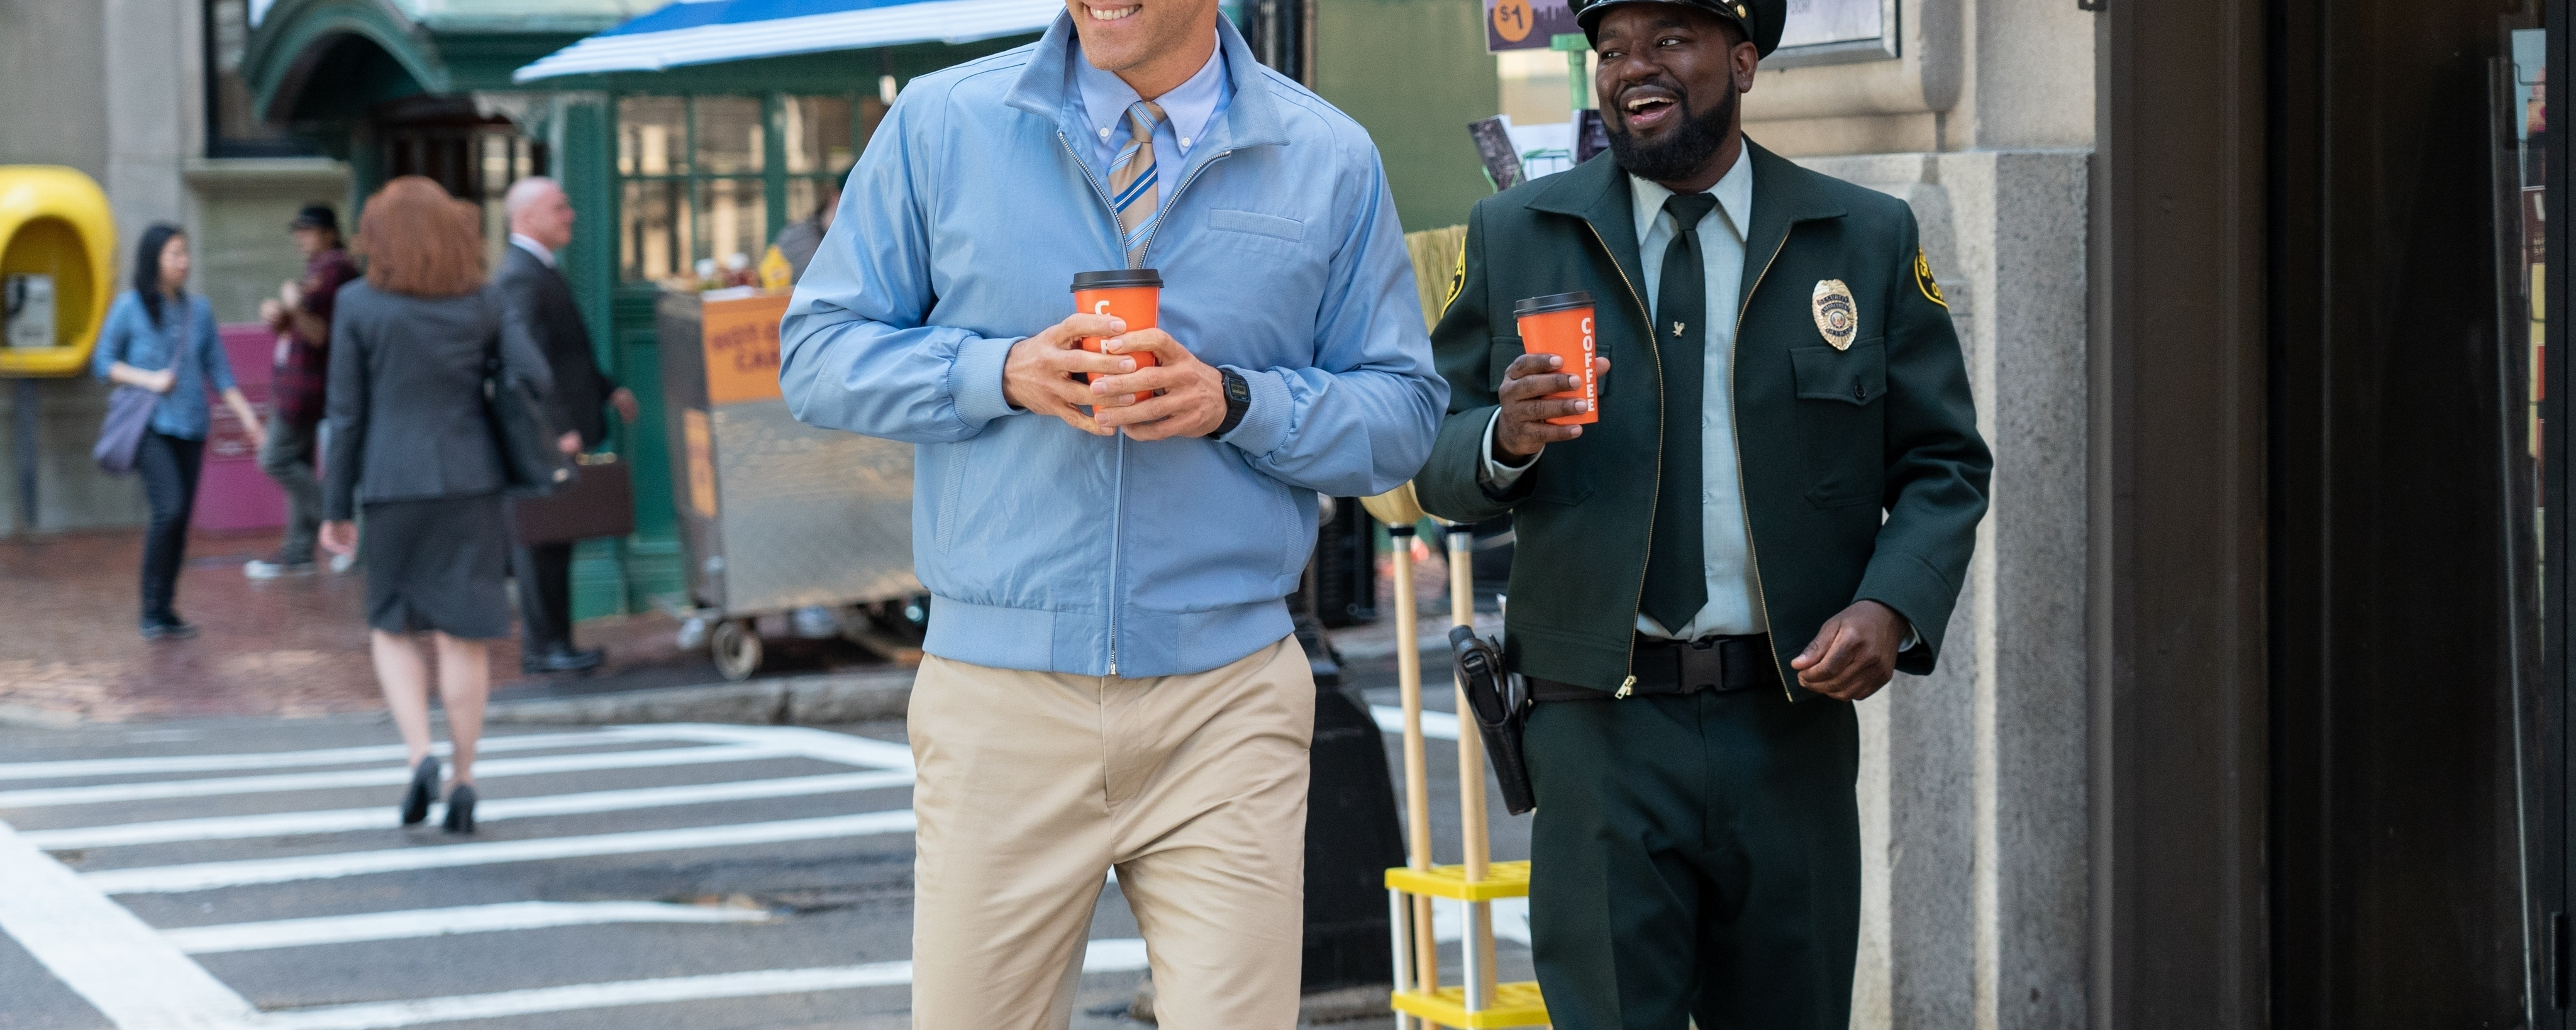 Ryan Reynolds and Lil Rel Howery walk down the street in a scene from Free Guy